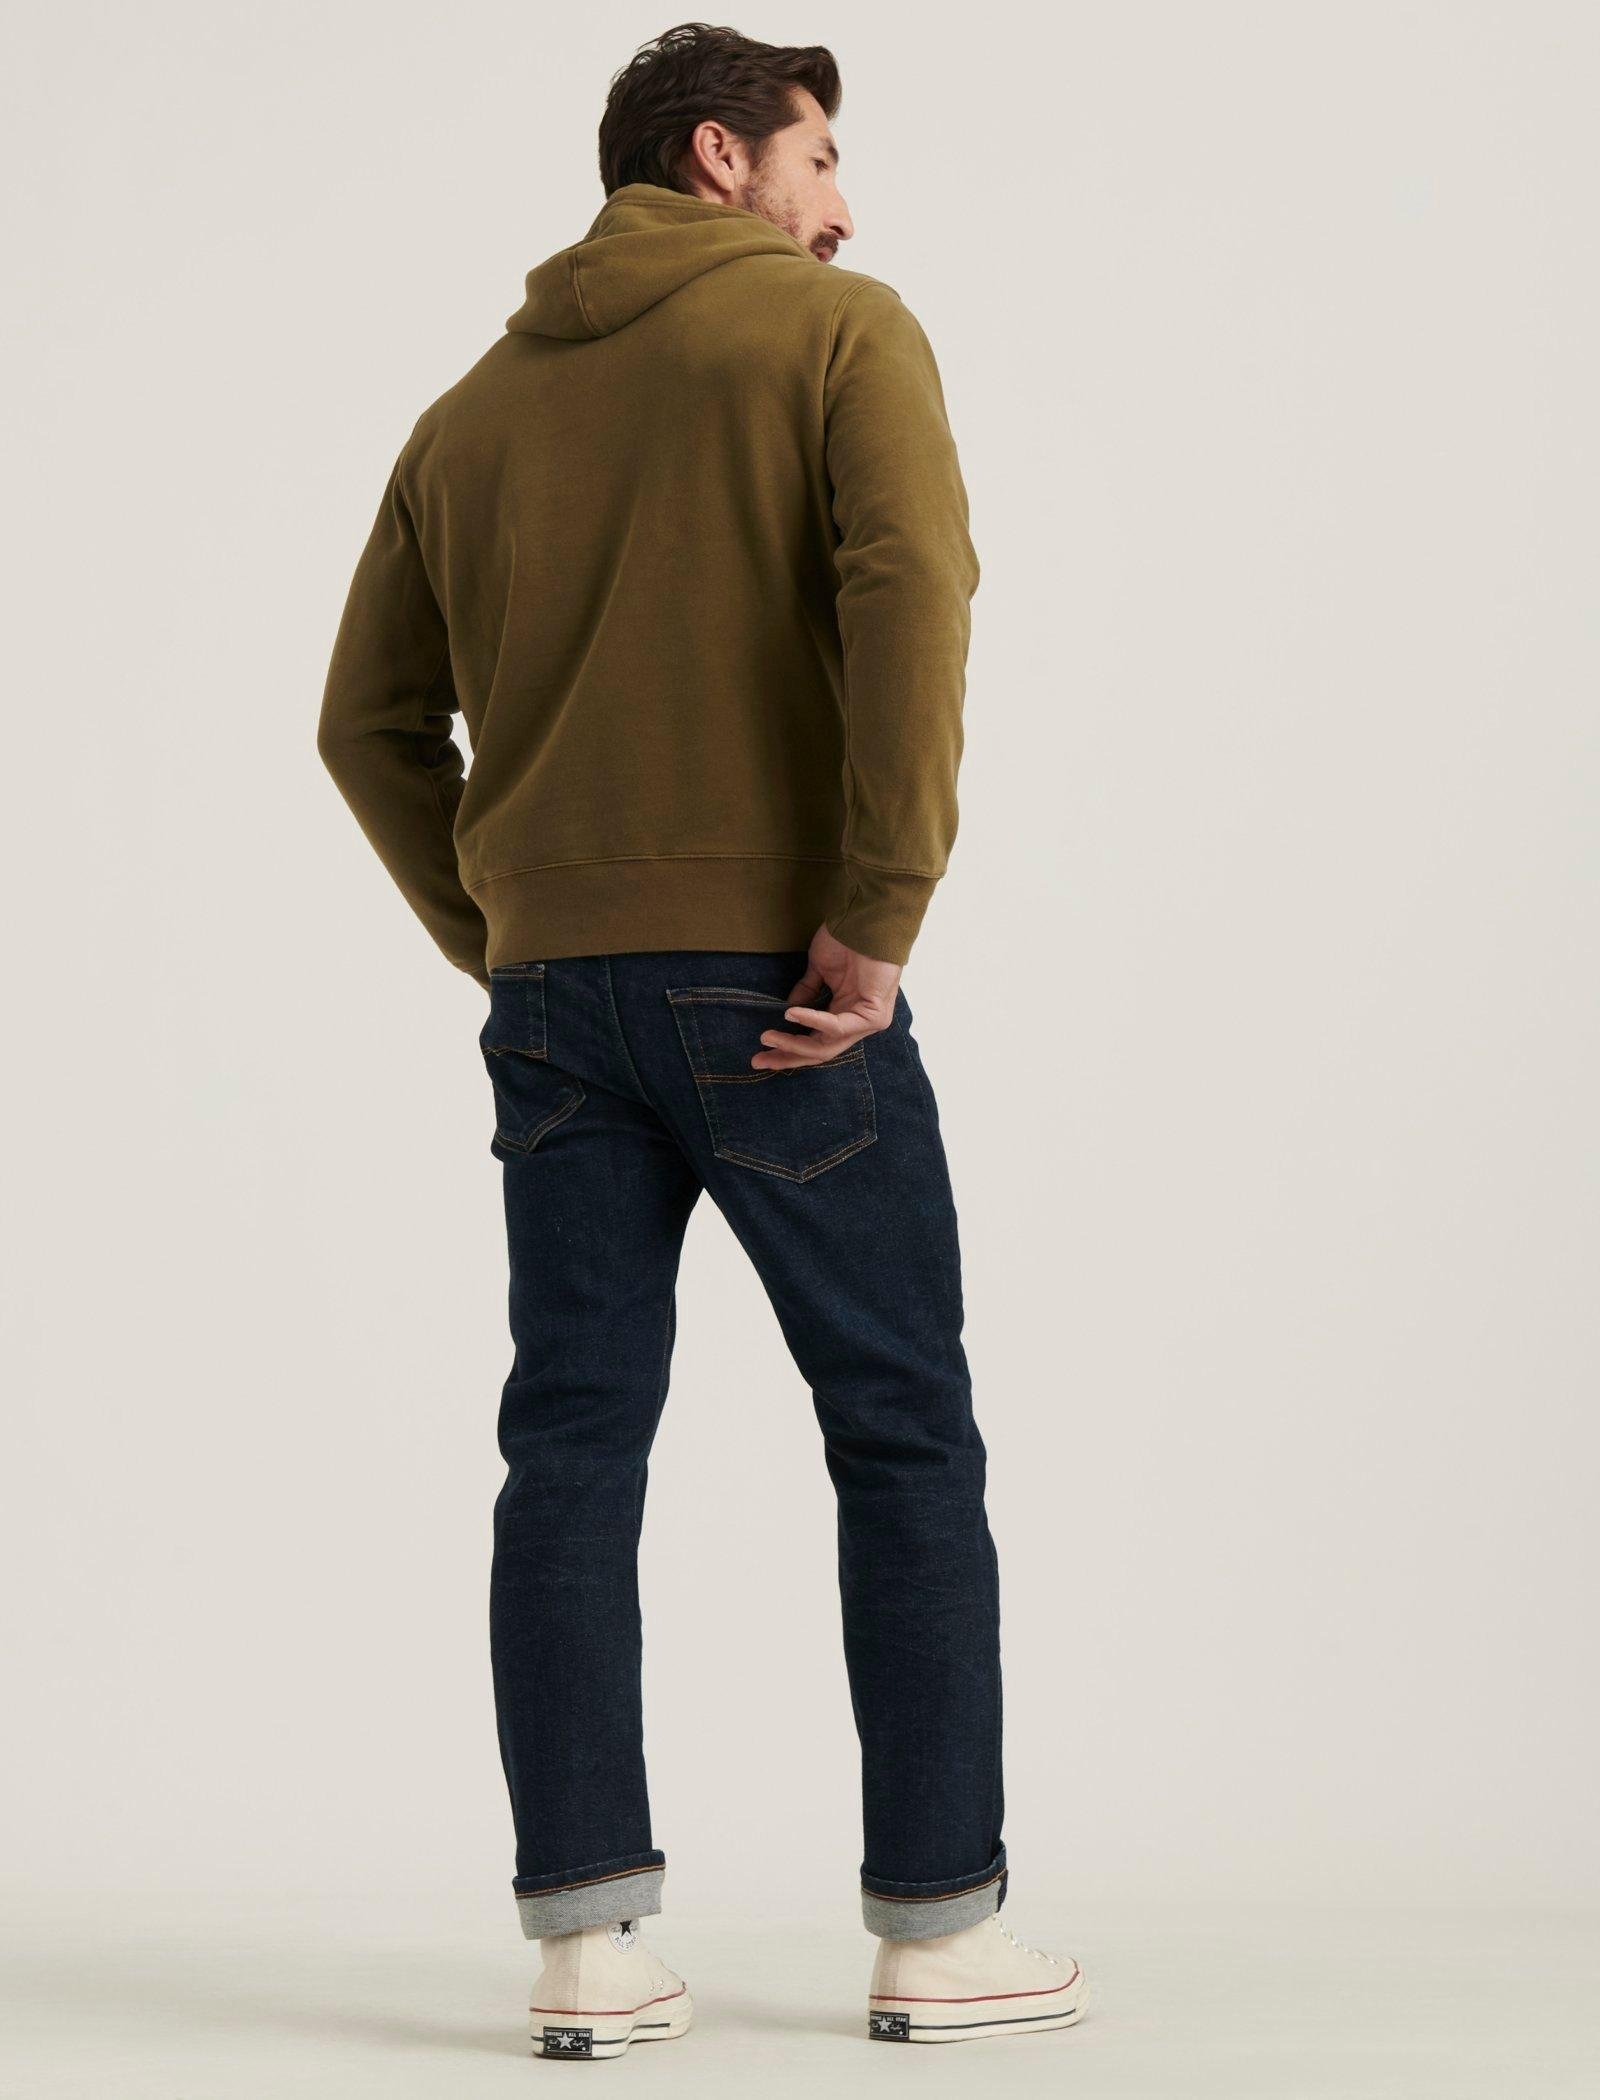 SUEDED FRENCH TERRY HOODIE, image 3